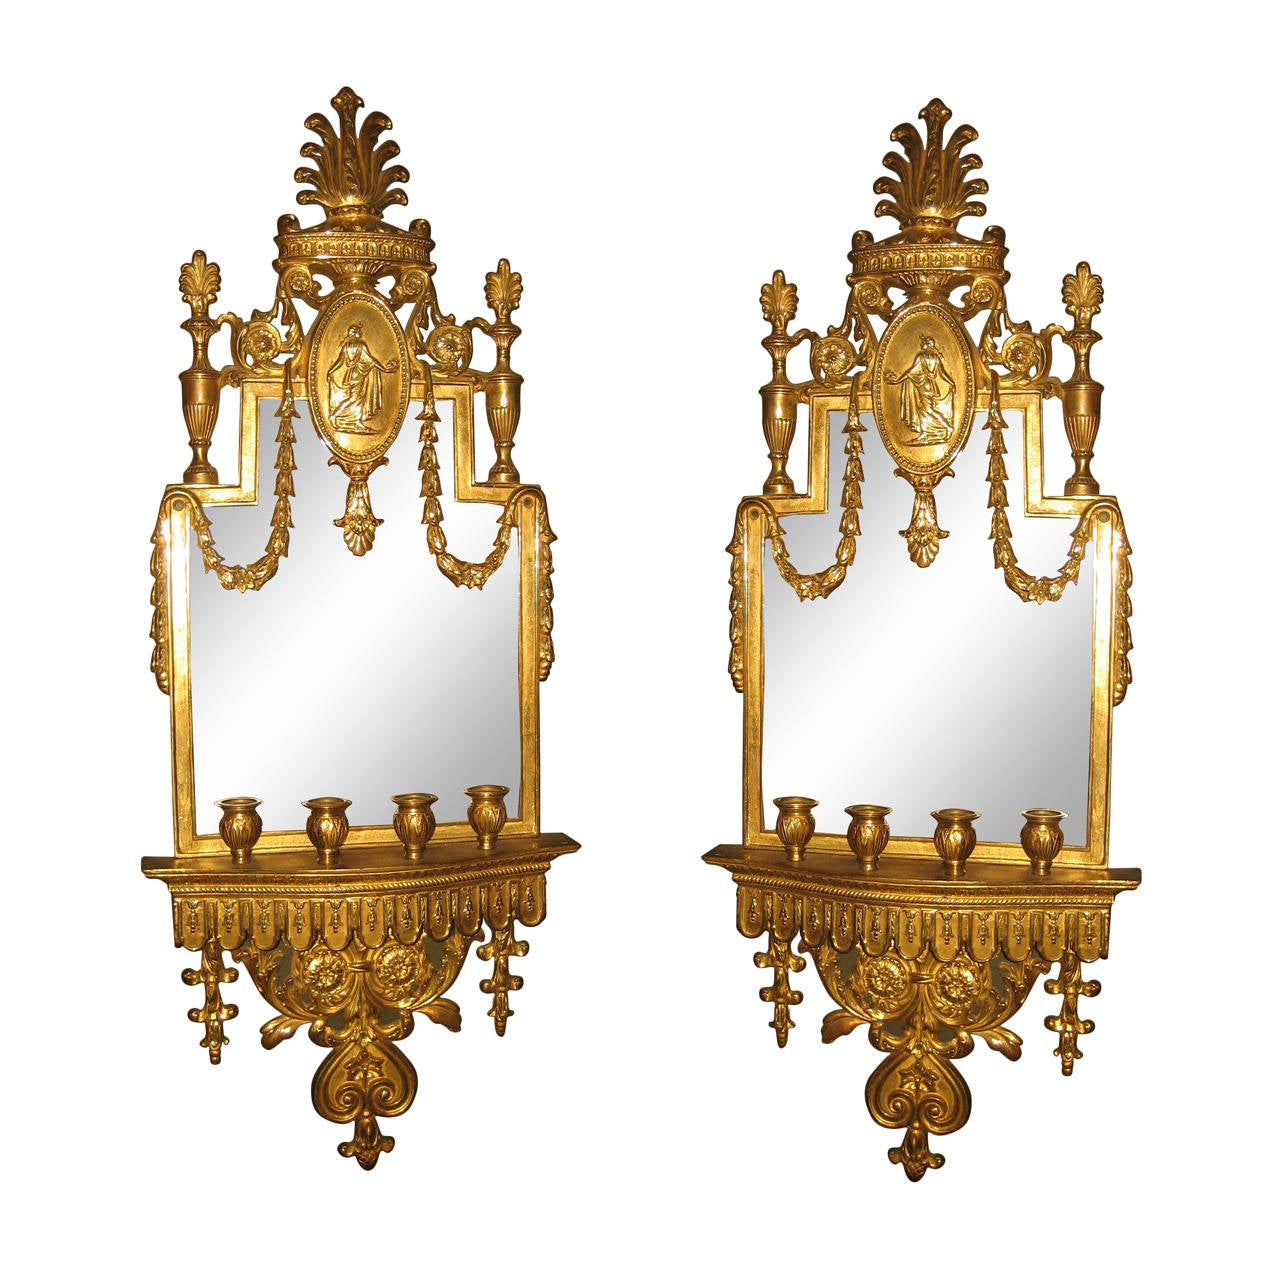 Antique Mirror Wall Sconces : Pair of Antique French Neoclassical Gilt Bronze Mirrored Wall Sconces at 1stdibs